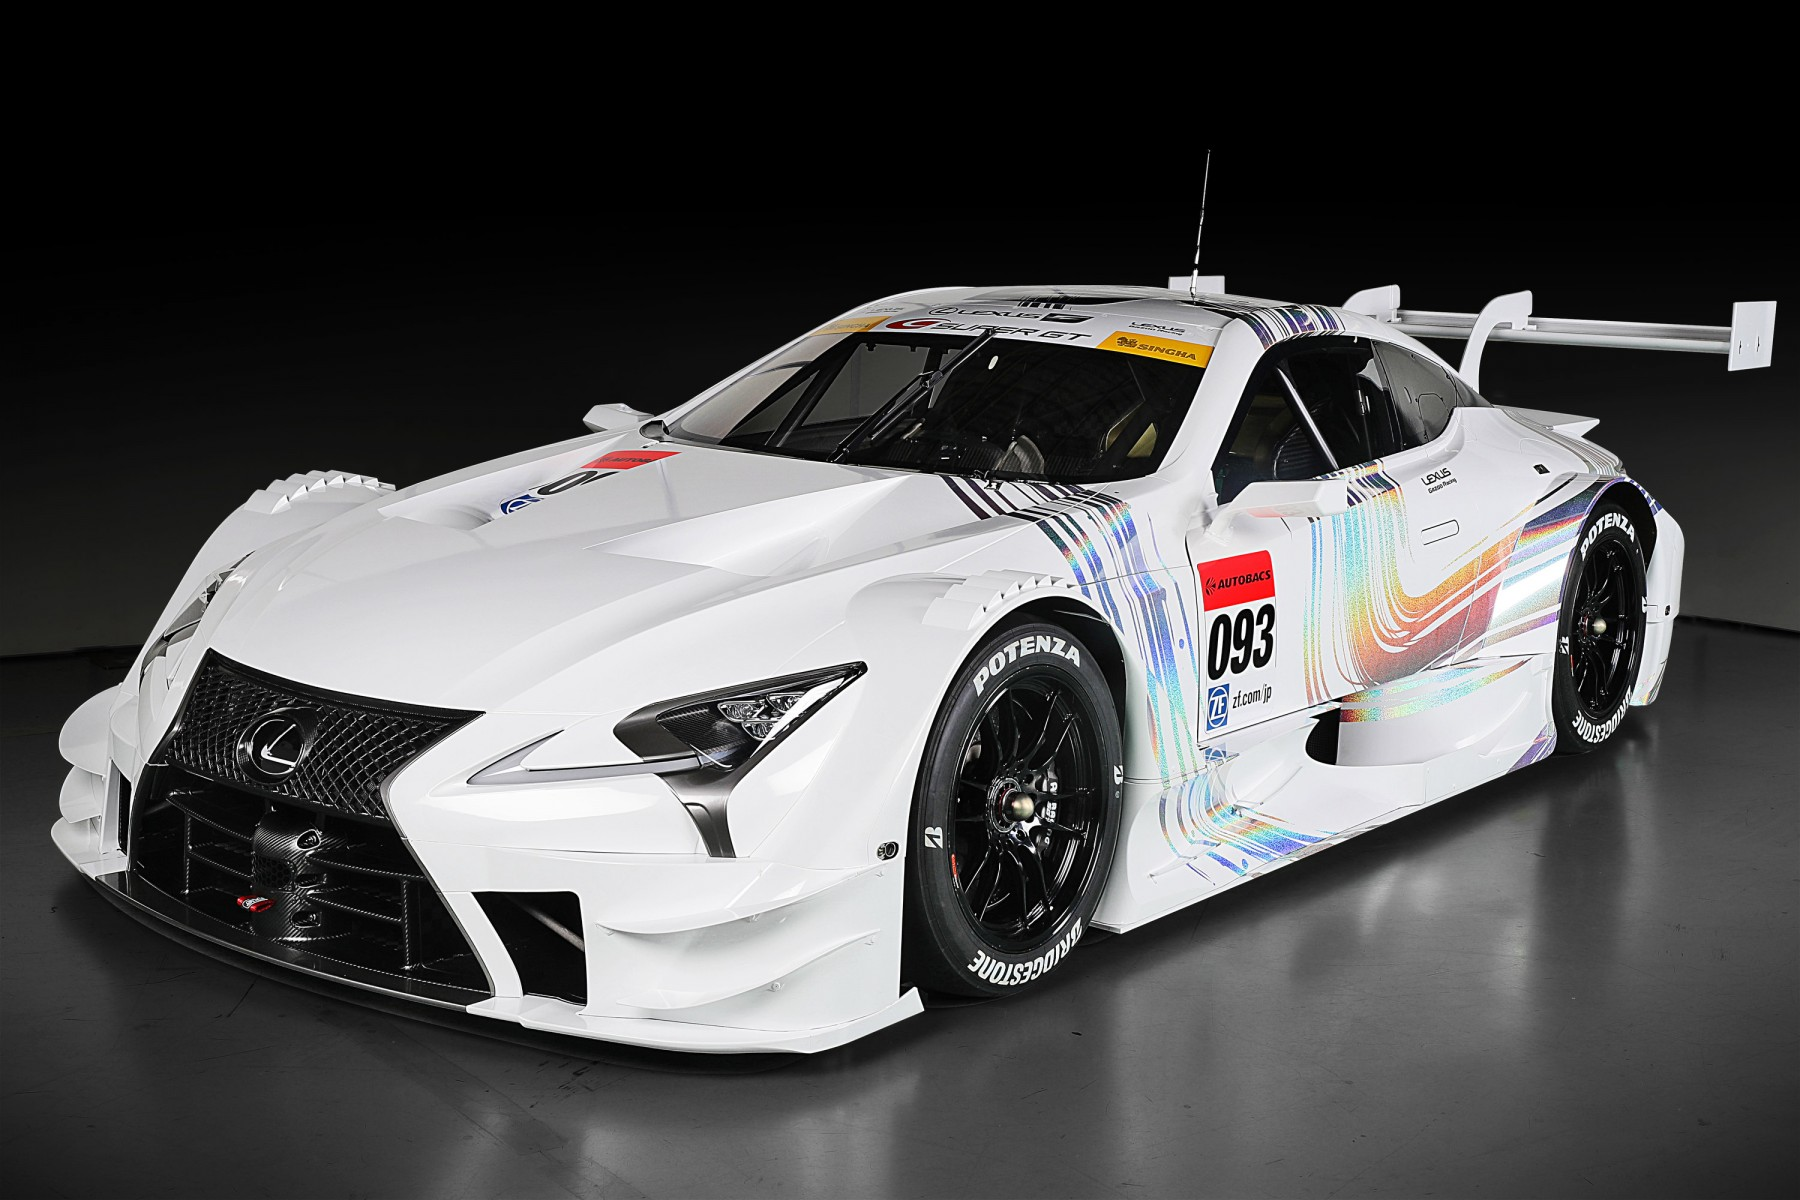 https://content.presspage.com/uploads/1850/1920_lexus20201720super20gt20race20car202.jpg?10000